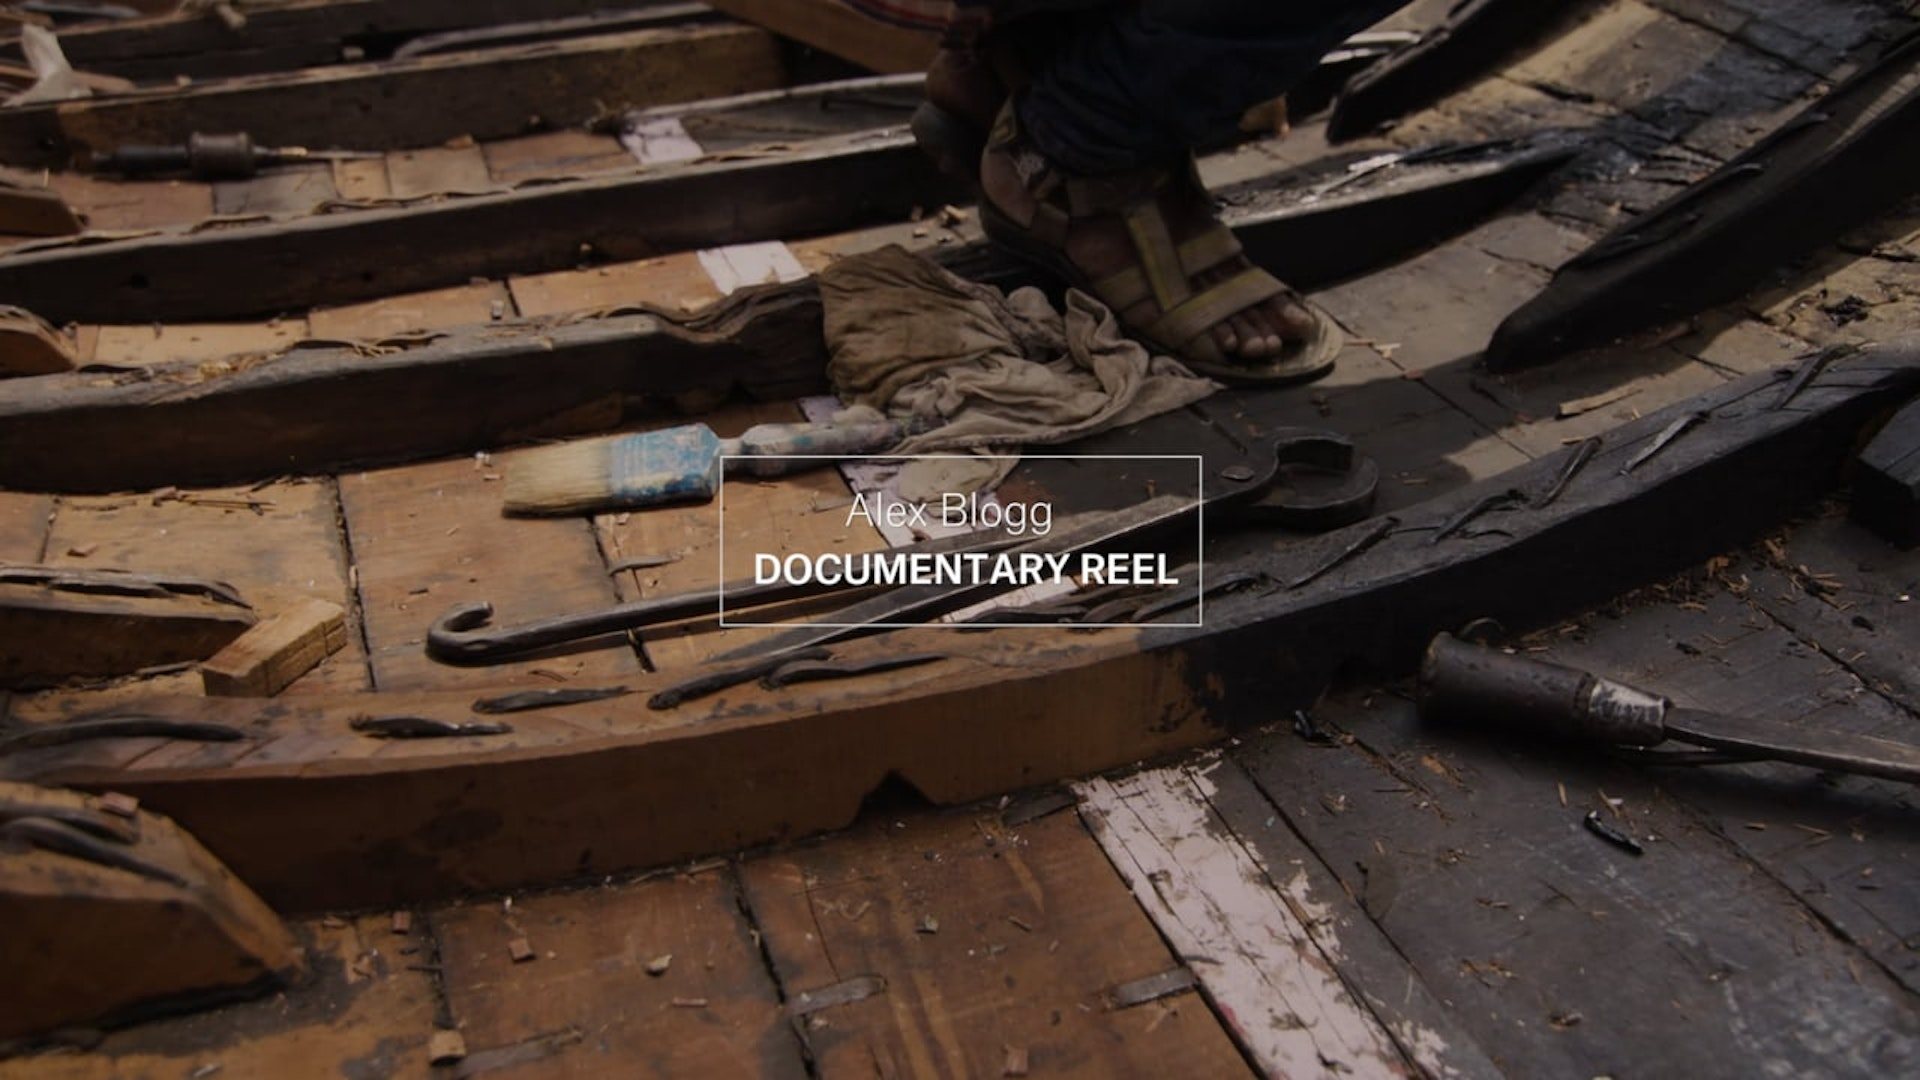 Documentary Reel